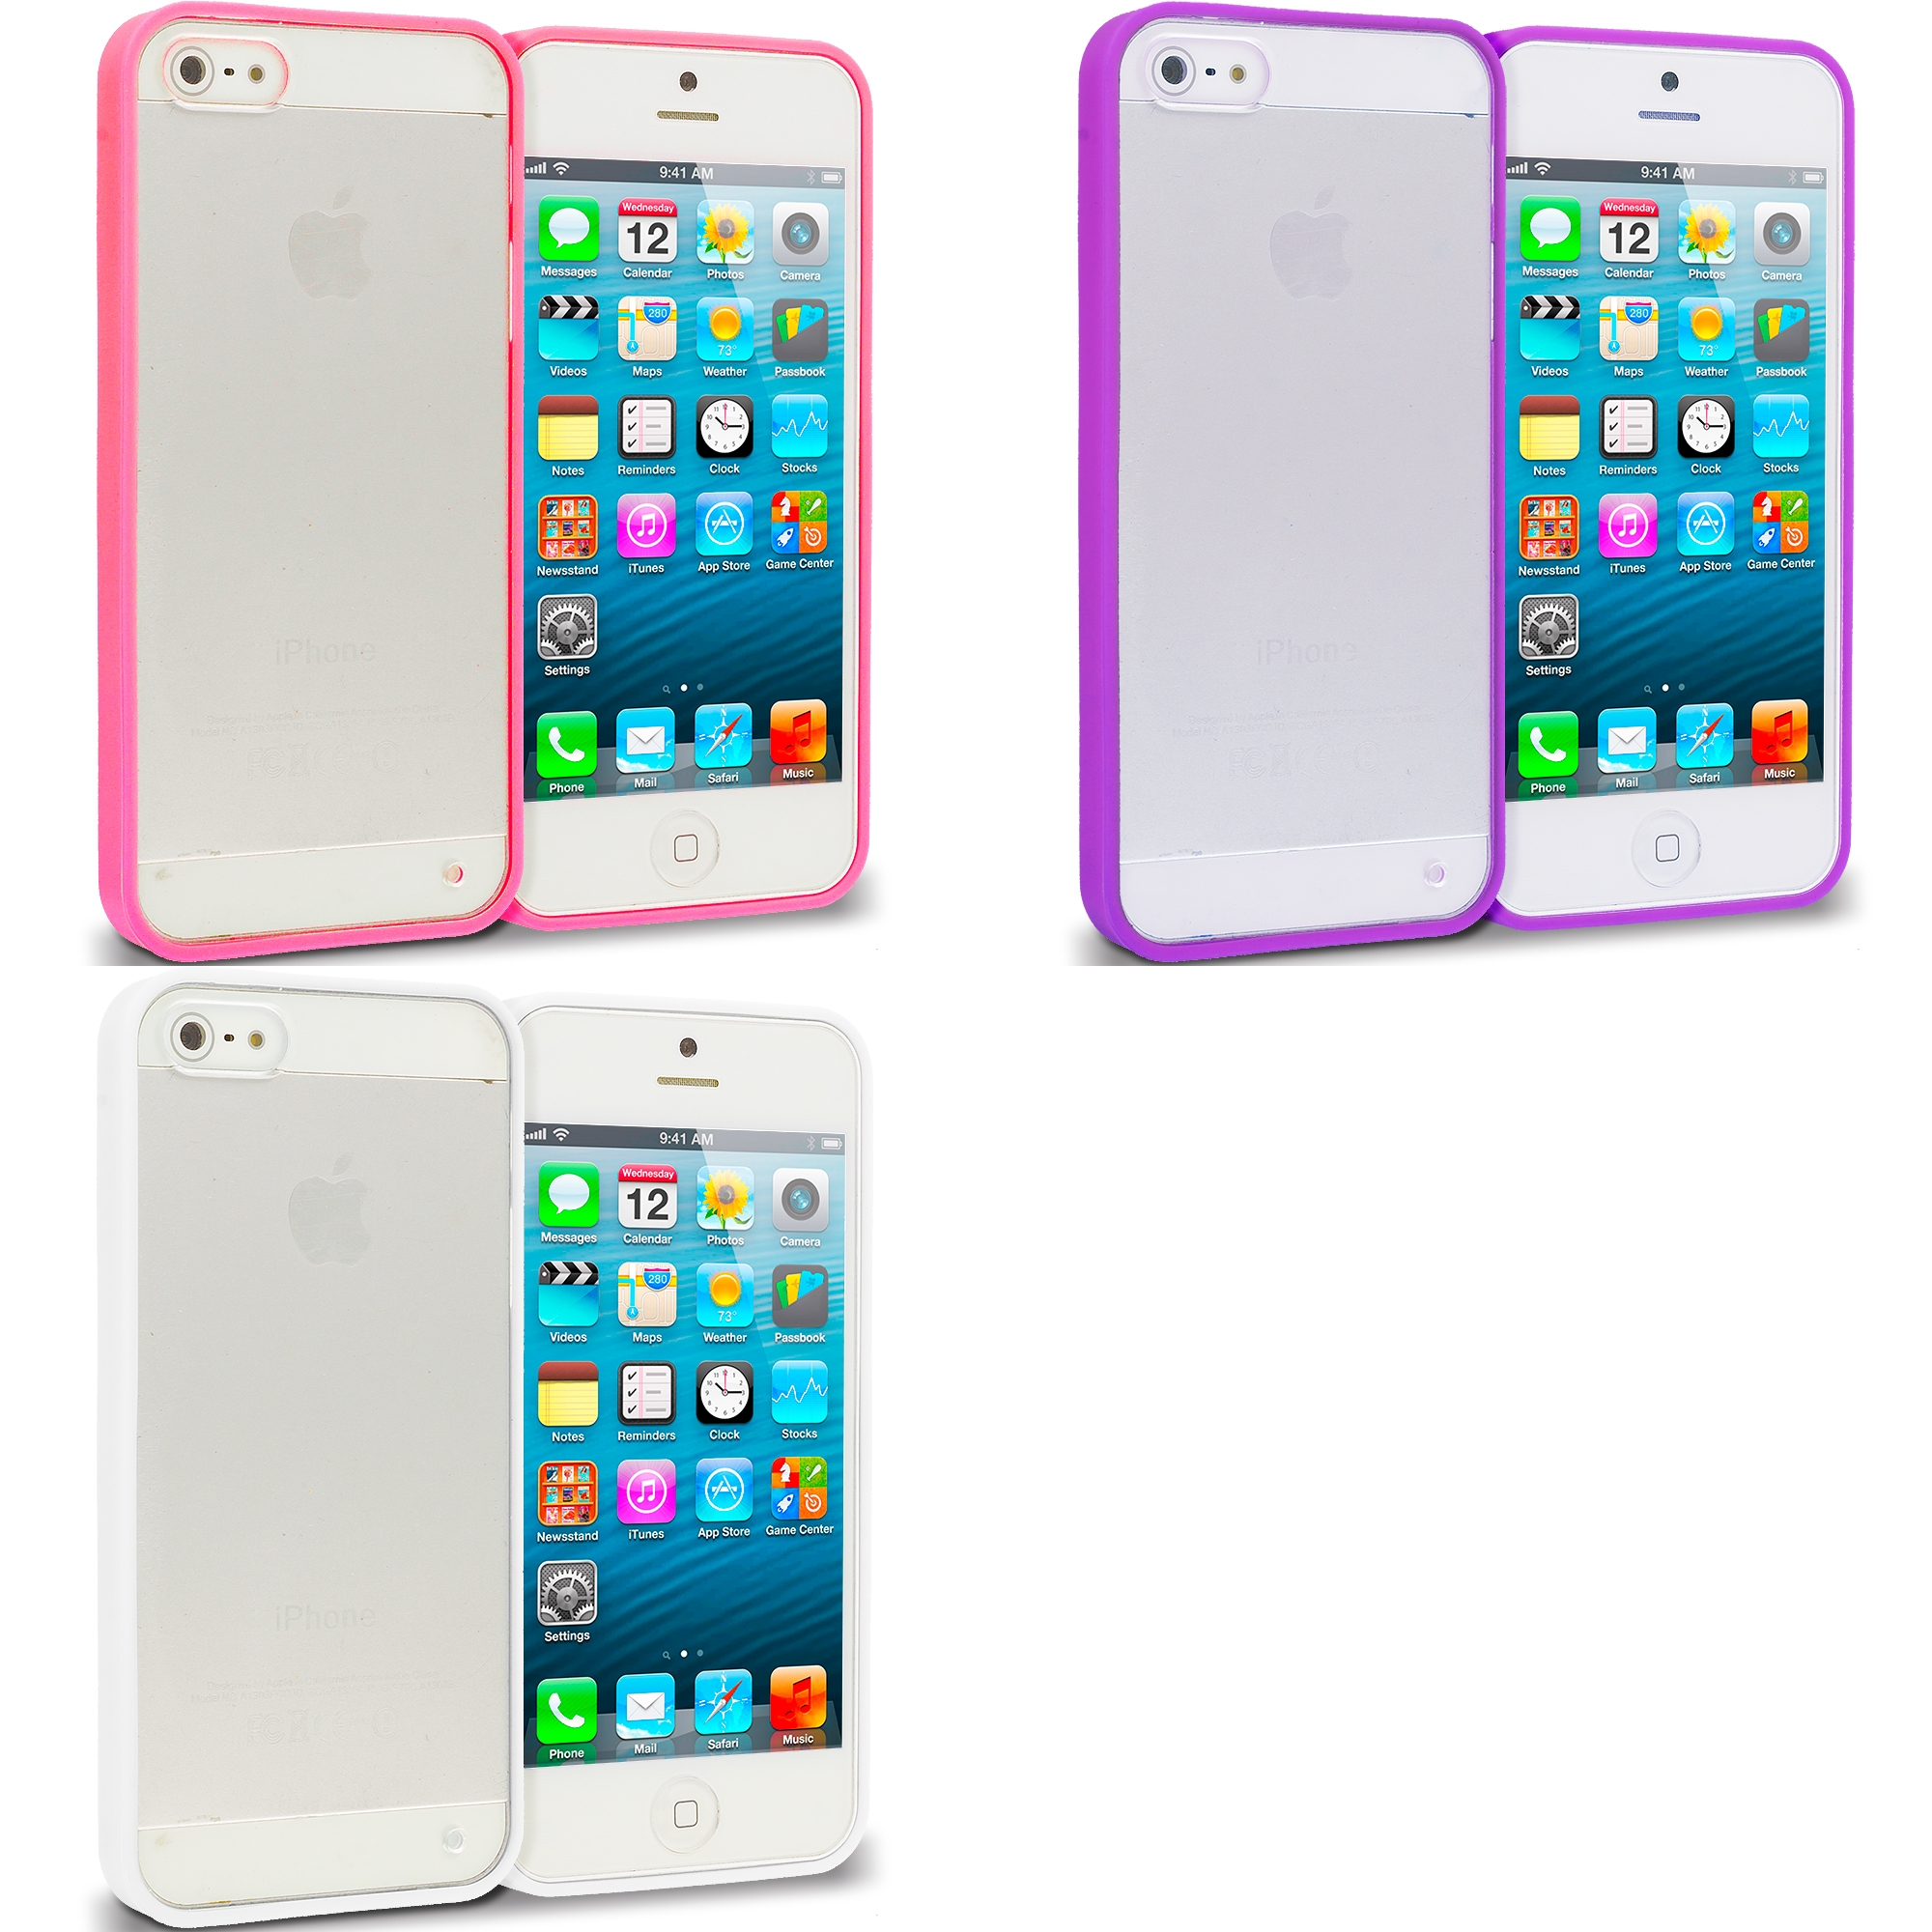 Apple iPhone 5/5S/SE Combo Pack : Hot Pink TPU Plastic Hybrid Case Cover